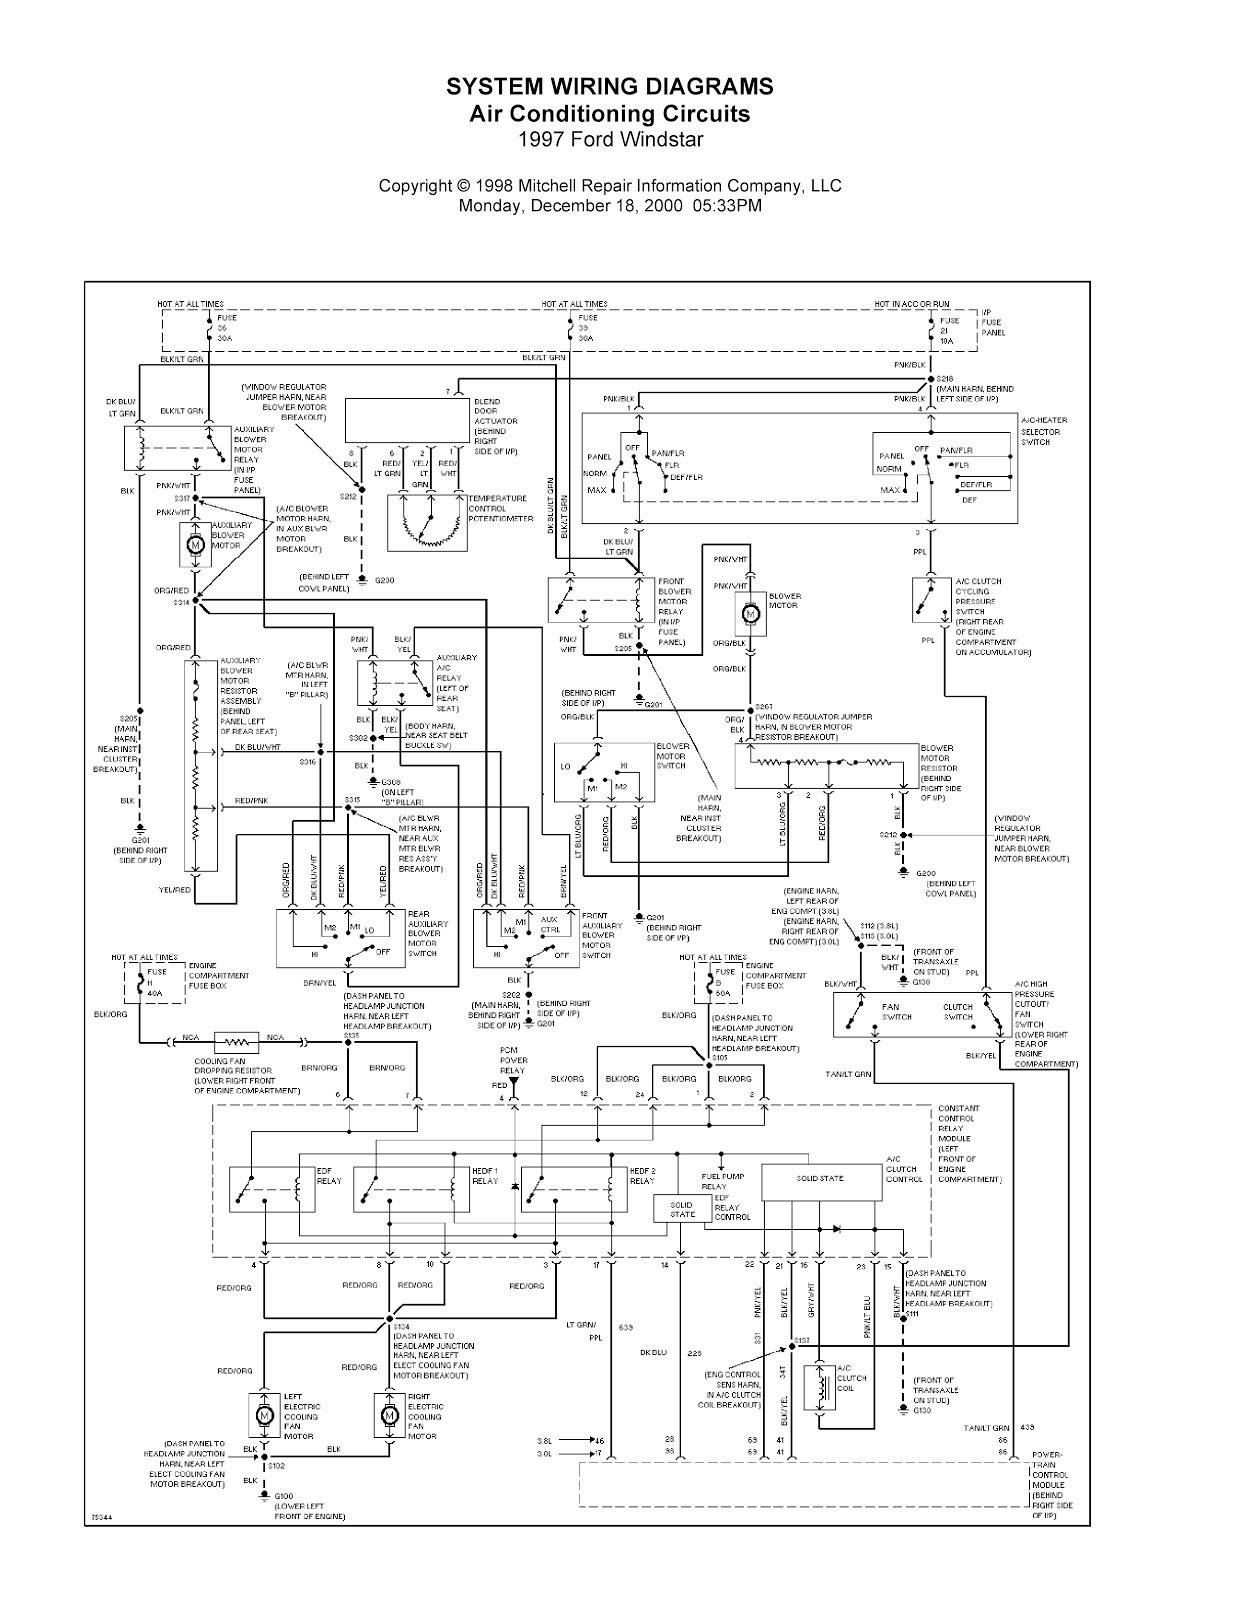 hight resolution of 1996 aerostar wiring diagram 20 22 kenmo lp de u2022ford aerostar wiring wiring diagram libraries